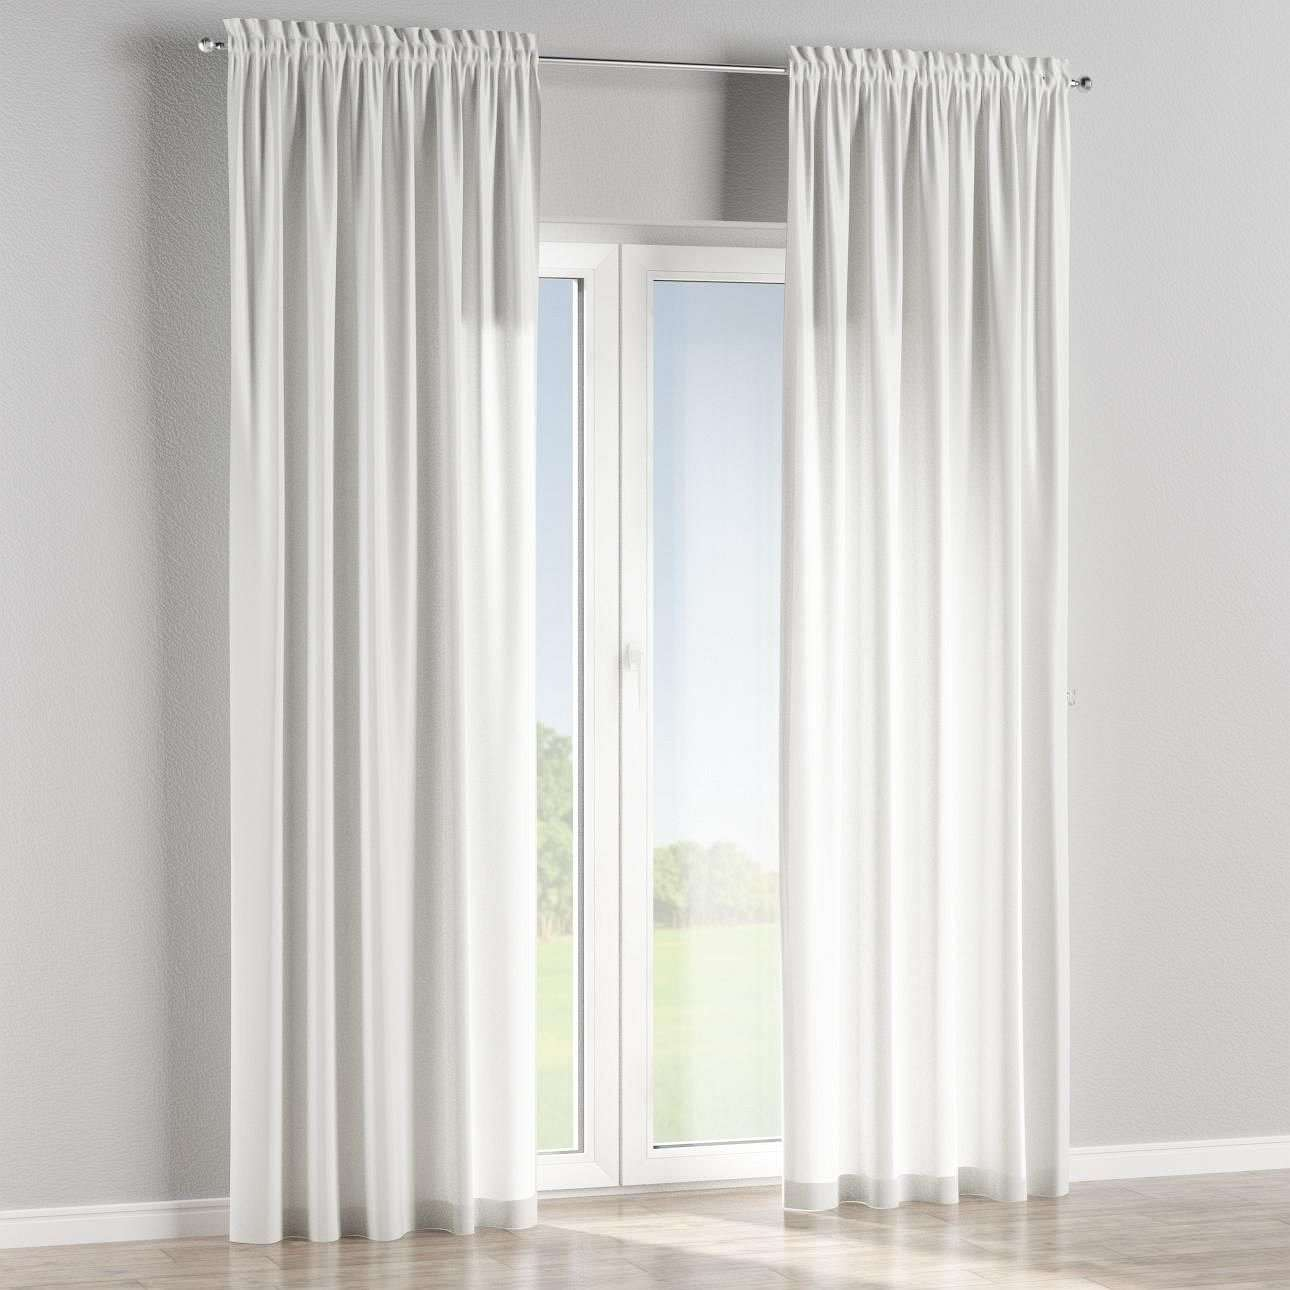 Slot and frill lined curtains in collection Londres, fabric: 122-03